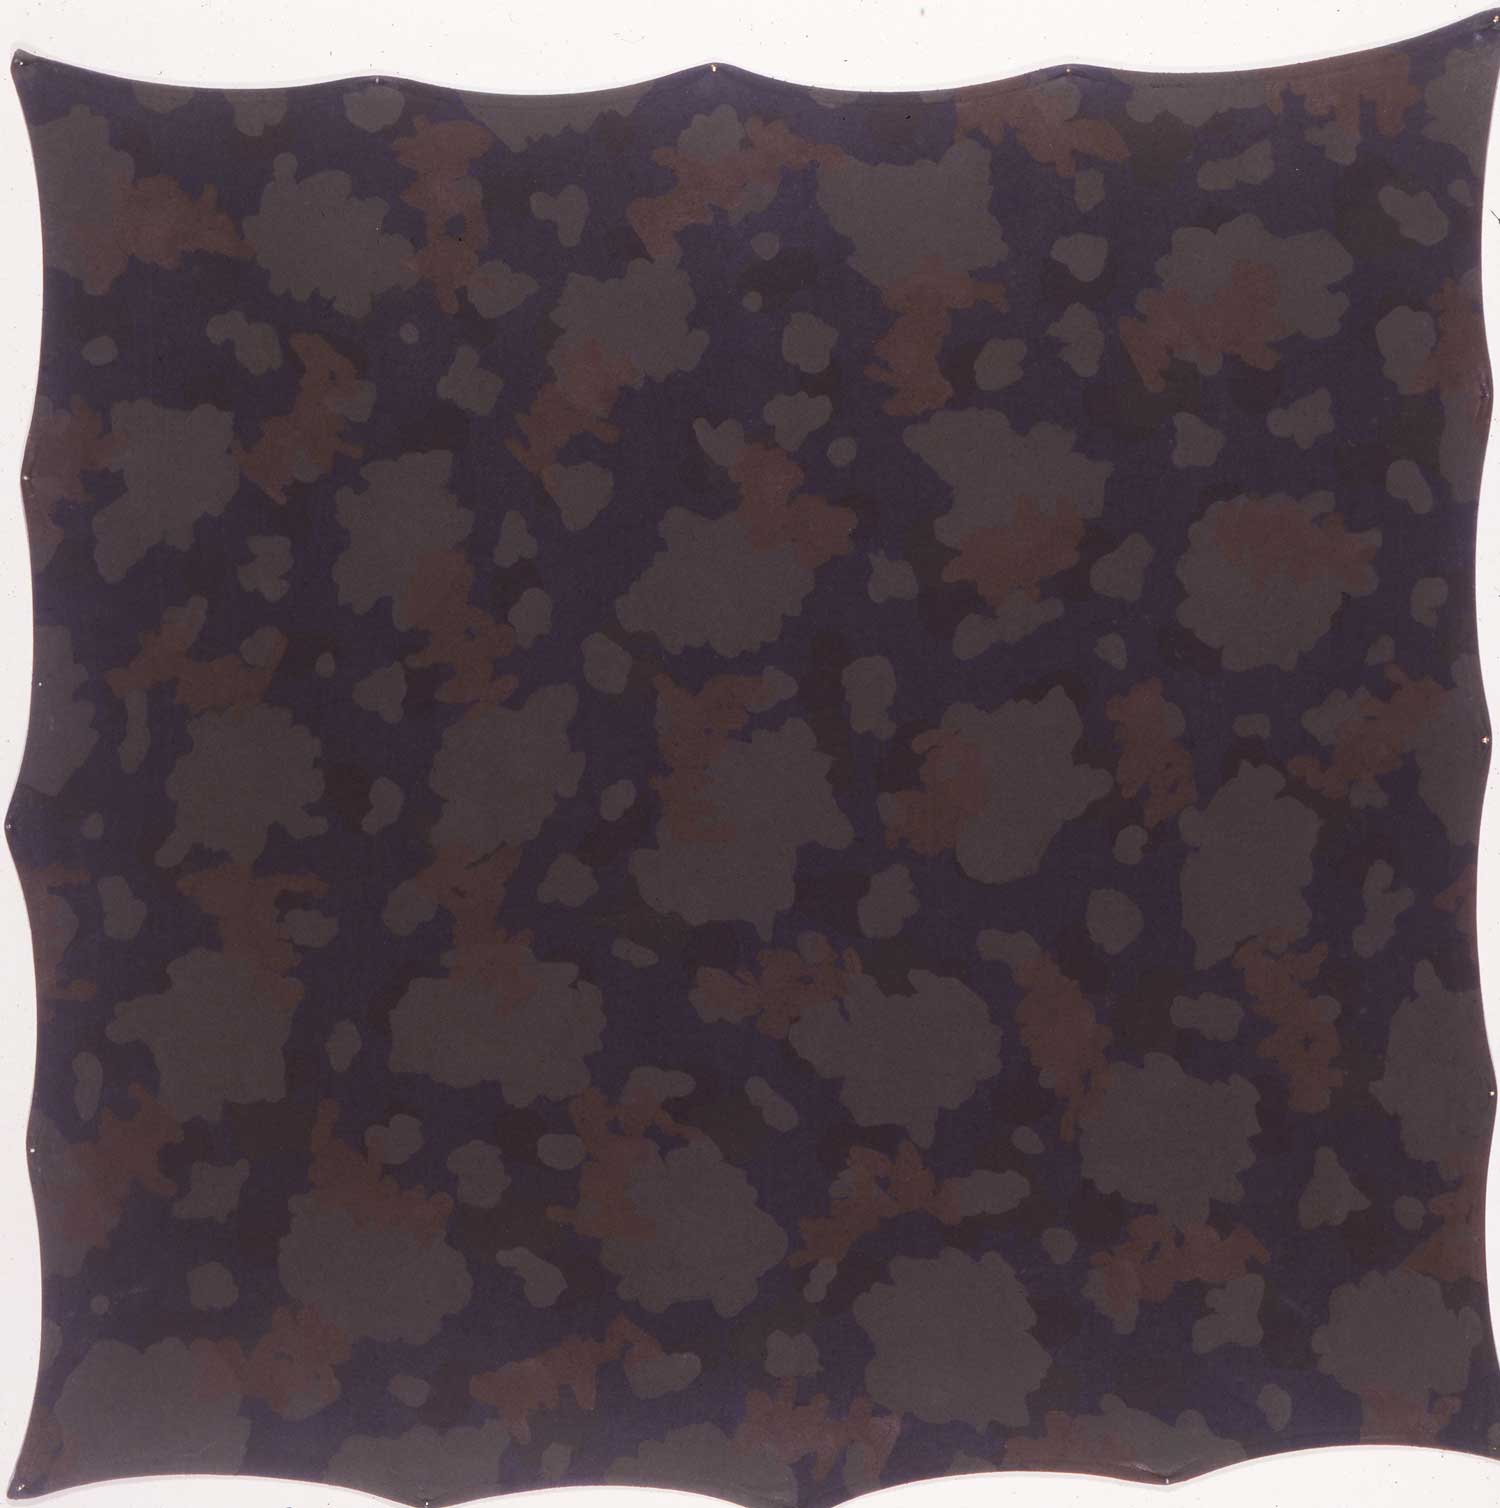 Tarnmuster / Camouflage pattern Nr. 16<br/>